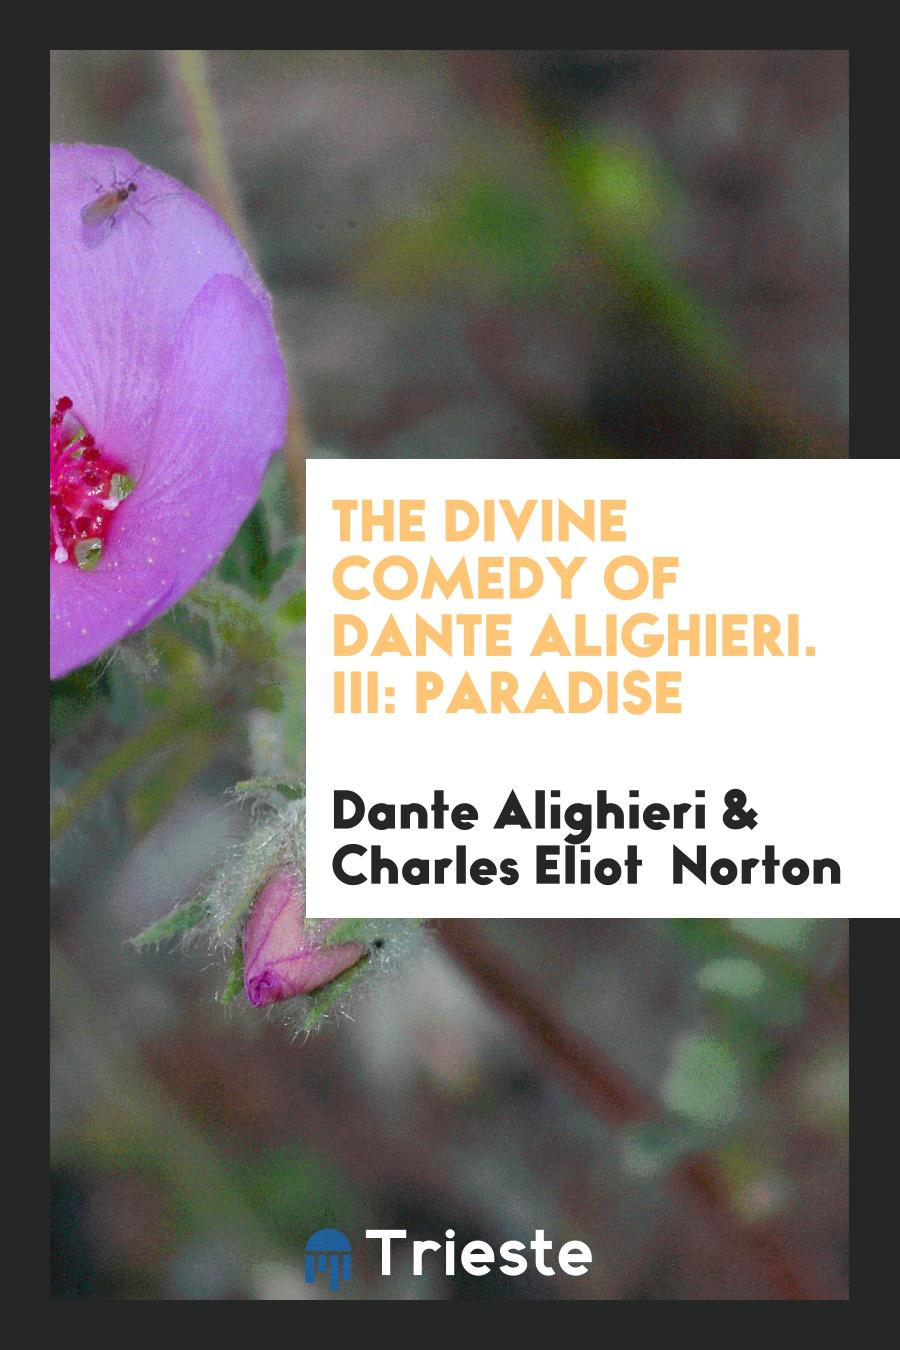 The Divine Comedy of Dante Alighieri. III: Paradise